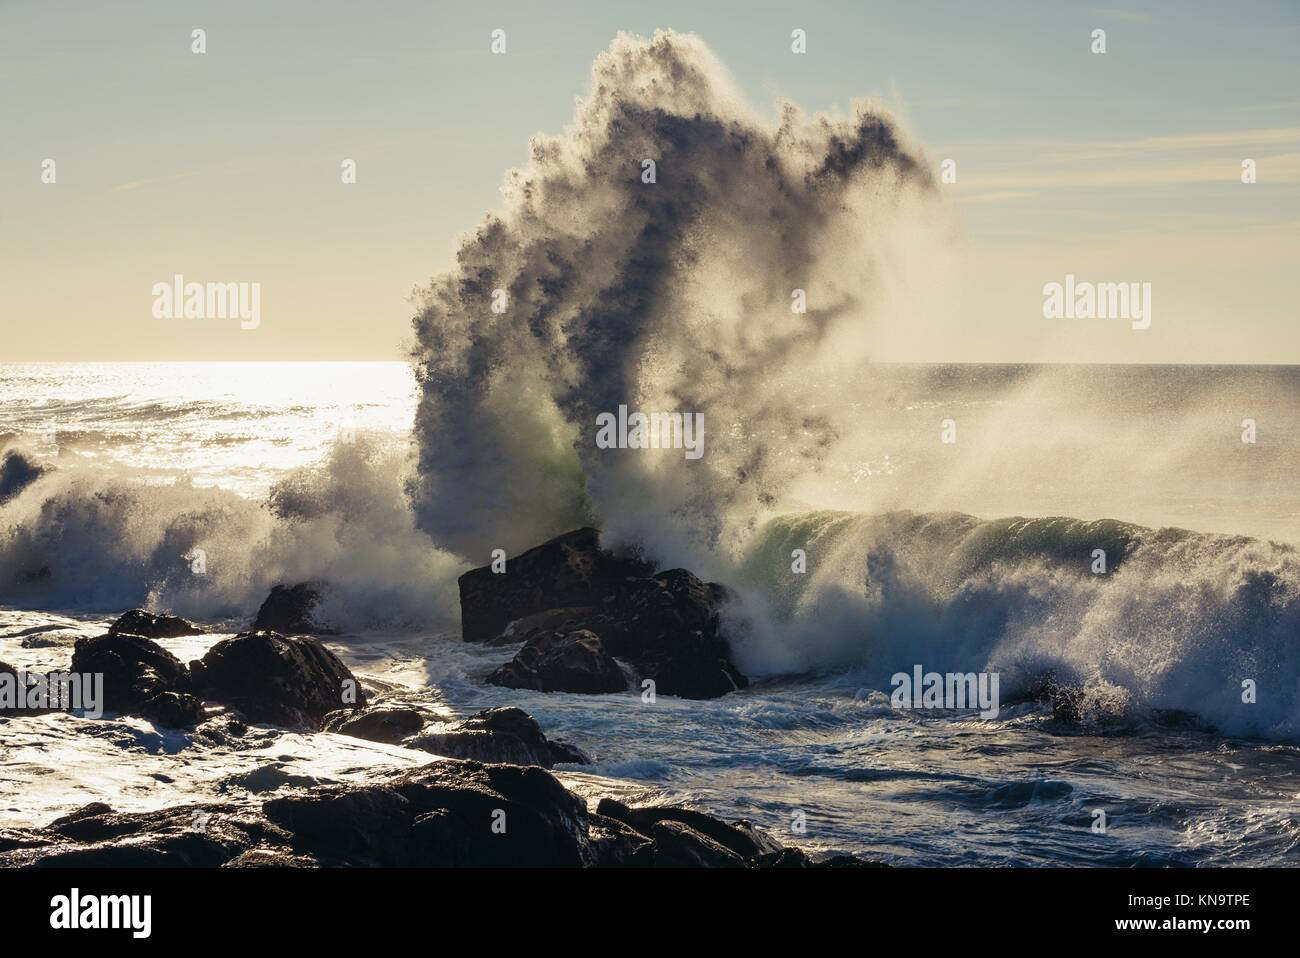 Big waves smashing on rocks of Atlantic Ocean shore in Nevogilde civil parish of Porto, second largest city in Portugal. - Stock Image